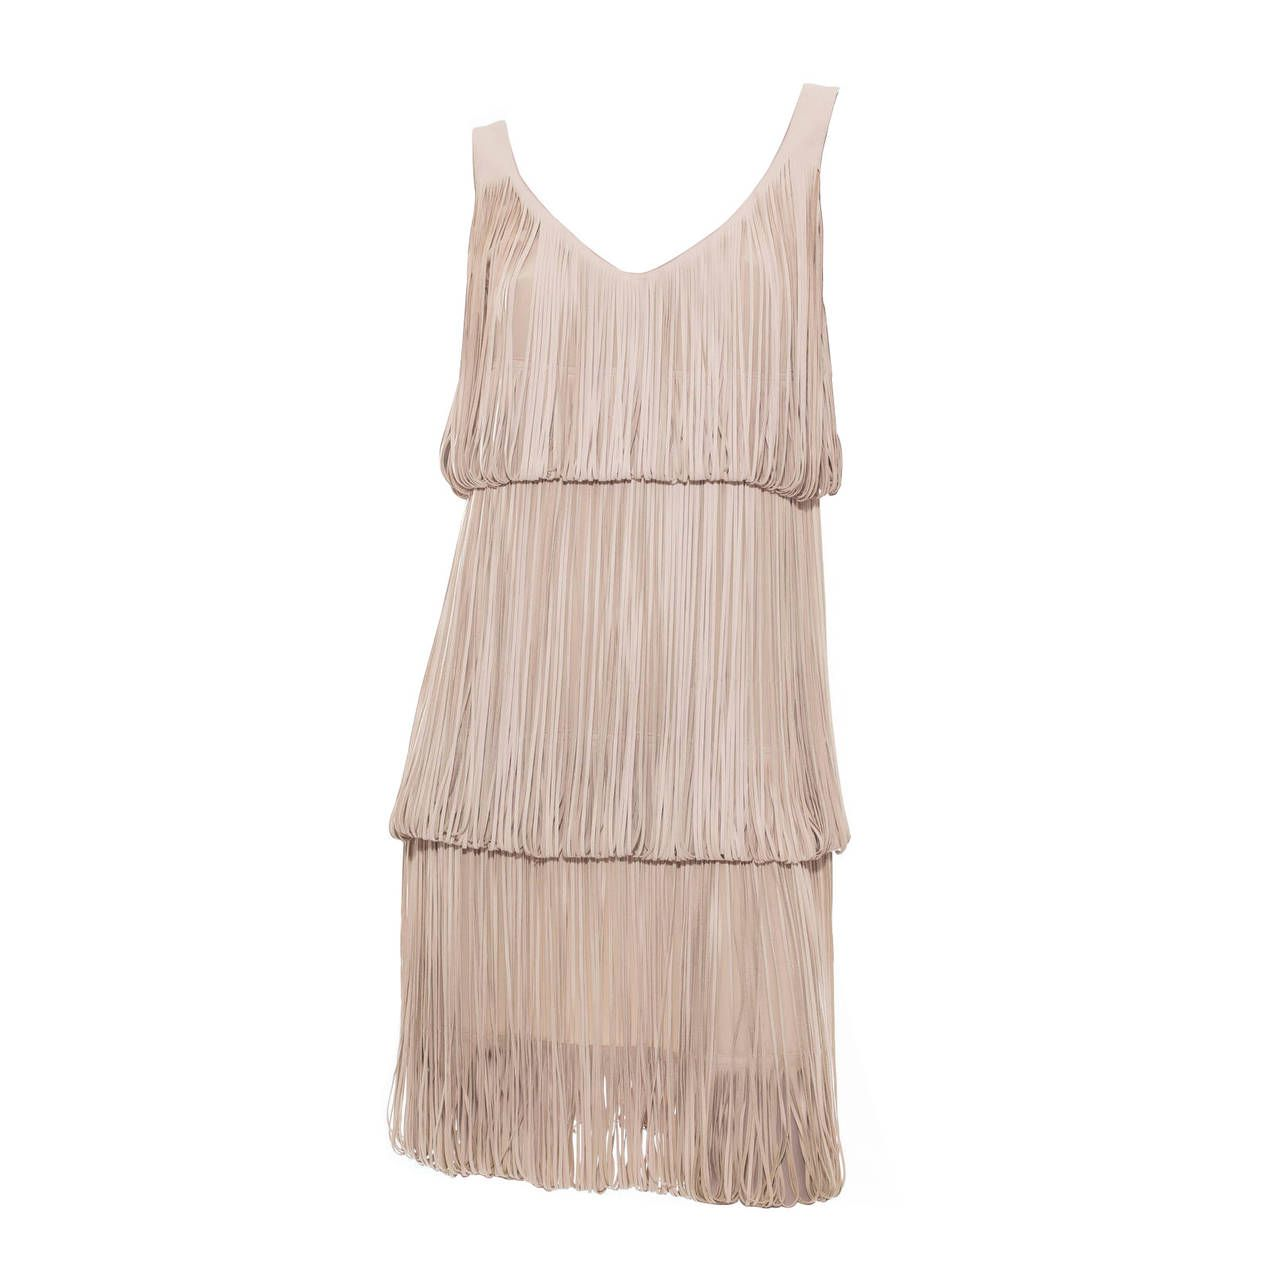 Alexander McQueen Leather Fringe Dress | From a collection of rare vintage day dresses at https://www.1stdibs.com/fashion/clothing/day-dresses/